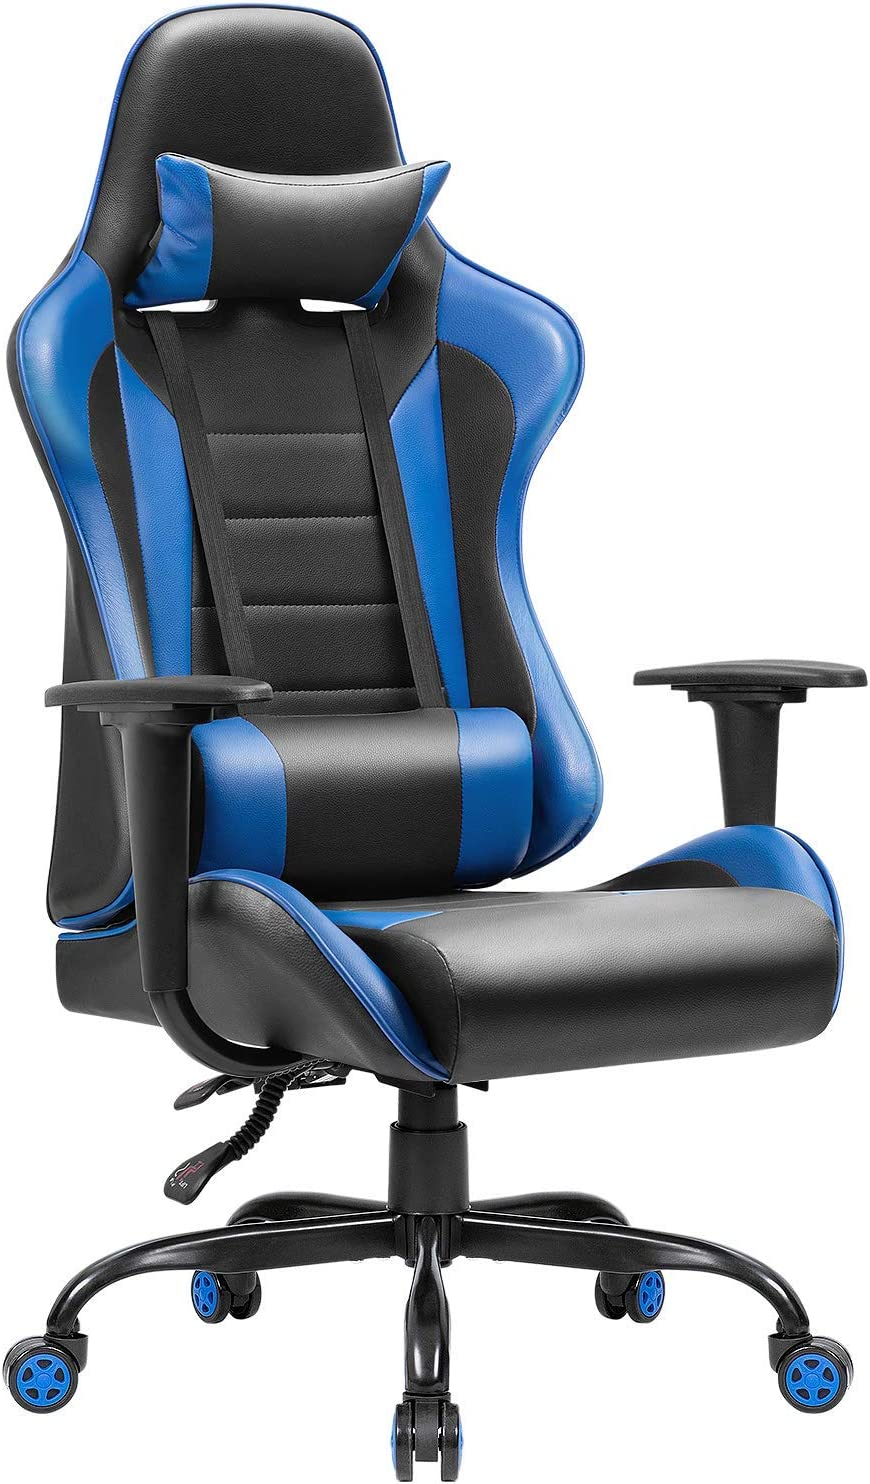 Amazon Com Jummico Gaming Chair High Back Pu Leather Racing Chair Ergonomic Computer Desk Executive Home Office Chair With Headrest And Lumbar Support Blue Furniture Decor